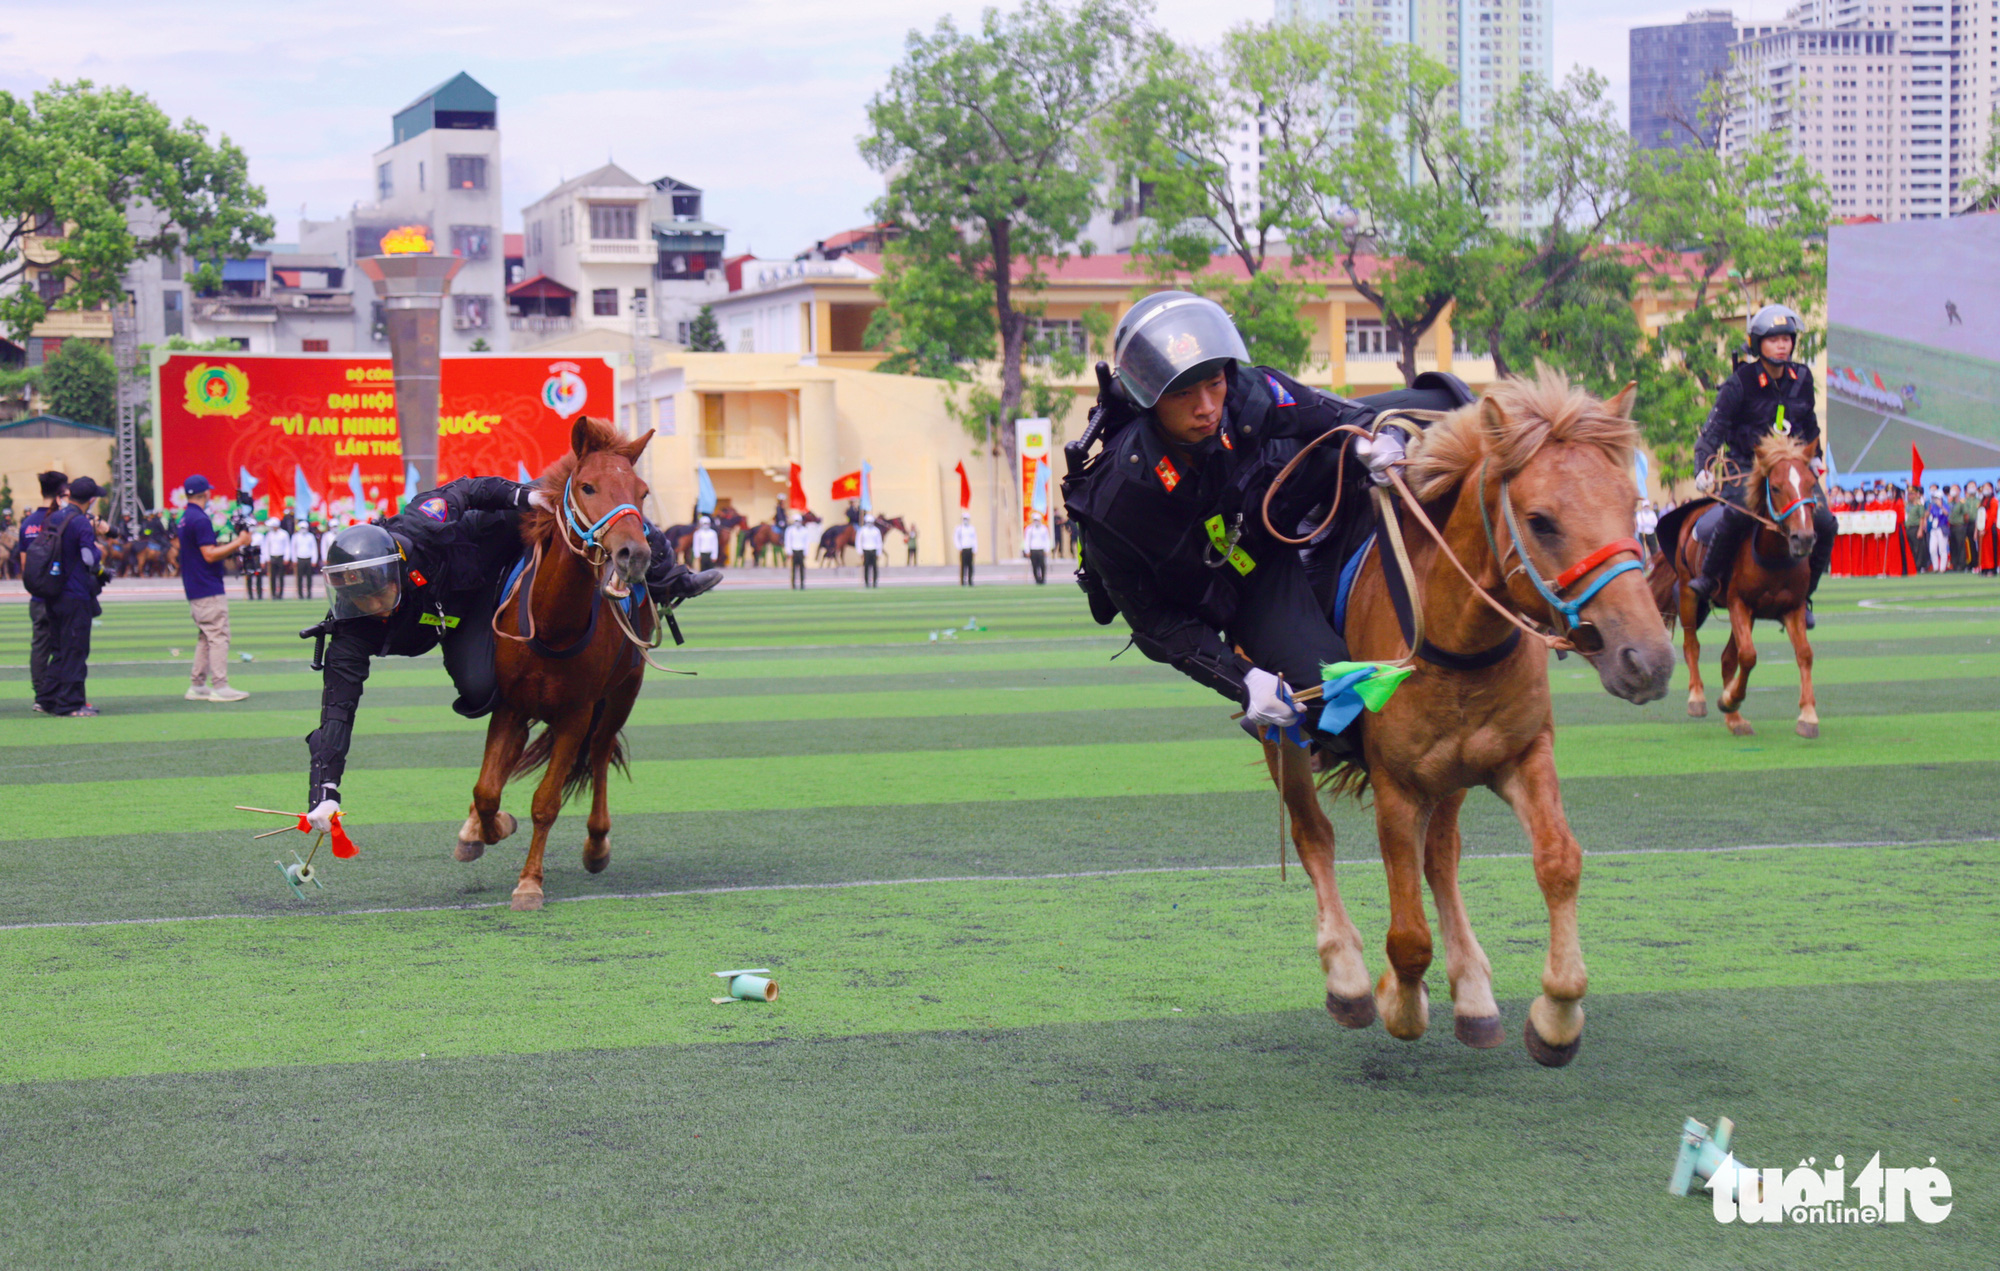 Mounted police officers their skills at the opening ceremony of the 'Stay Fit for National Security' Campaign in Hanoi, August 1, 2020. Photo: Danh Trong / Tuoi Tre